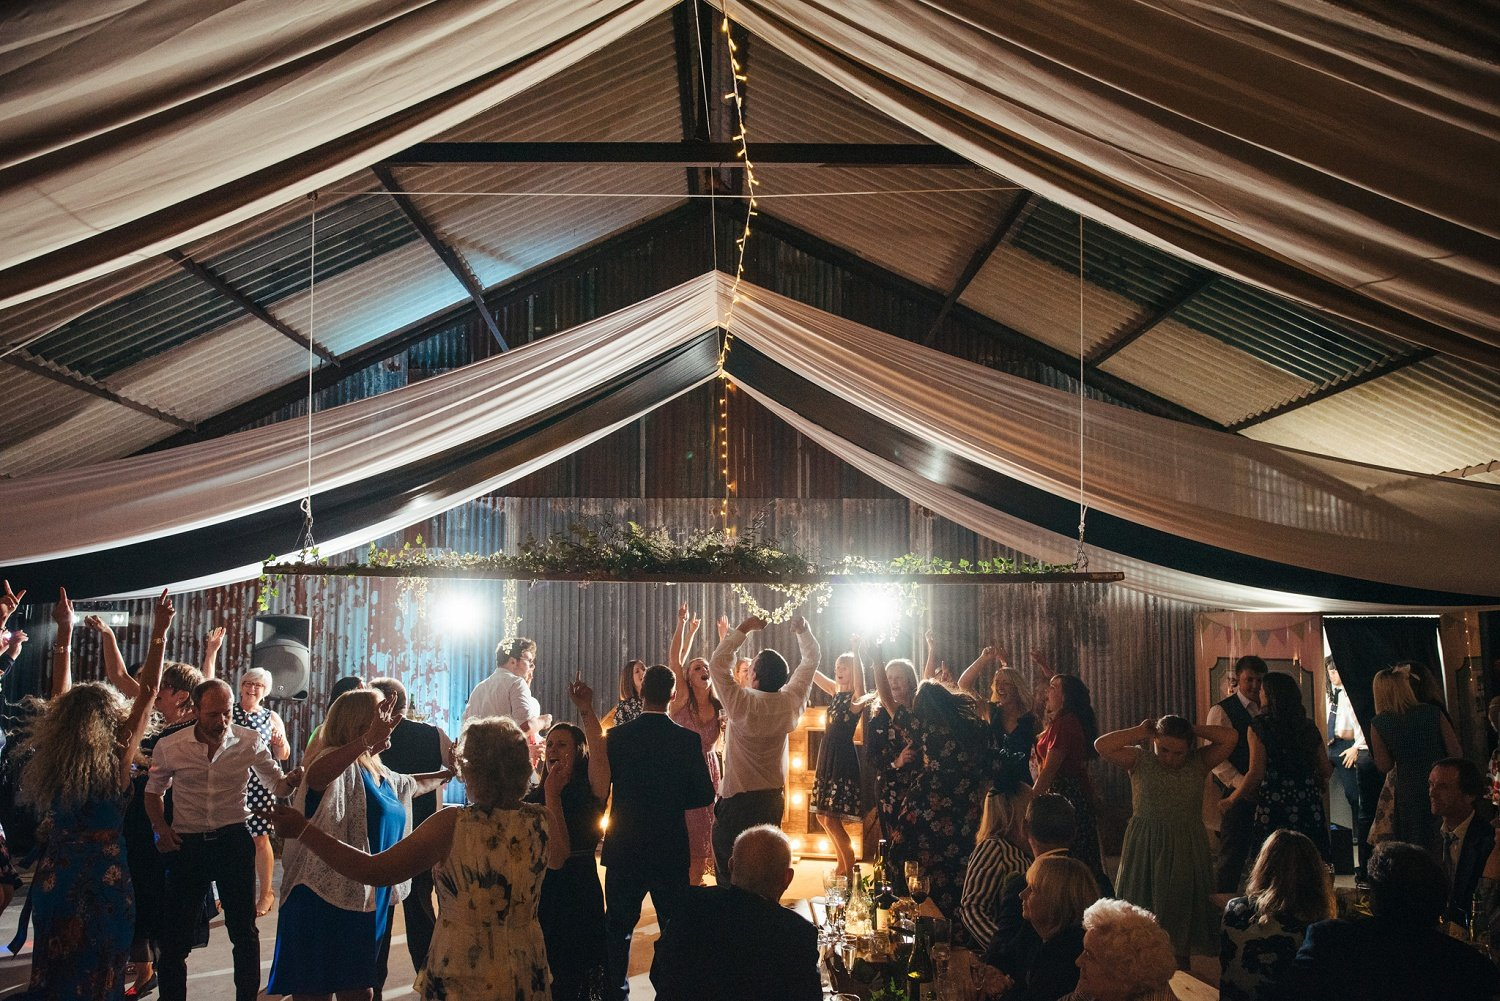 Guests having a great time on the dancefloor at a Barn wedding in Herefordshire